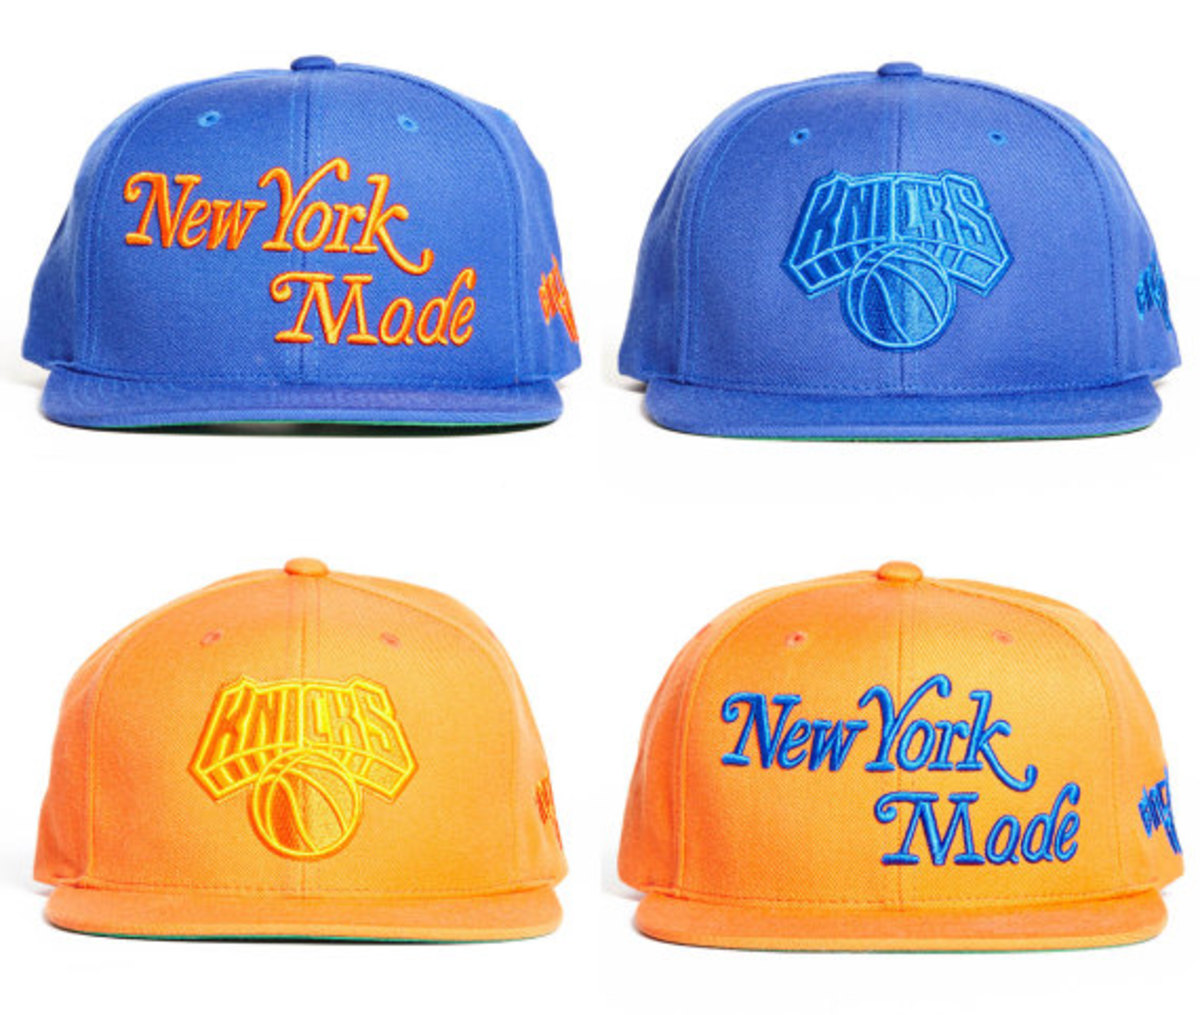 Public School: Black Apple x New York Knicks - Fall/Winter 2014 Capsule Collection - 0